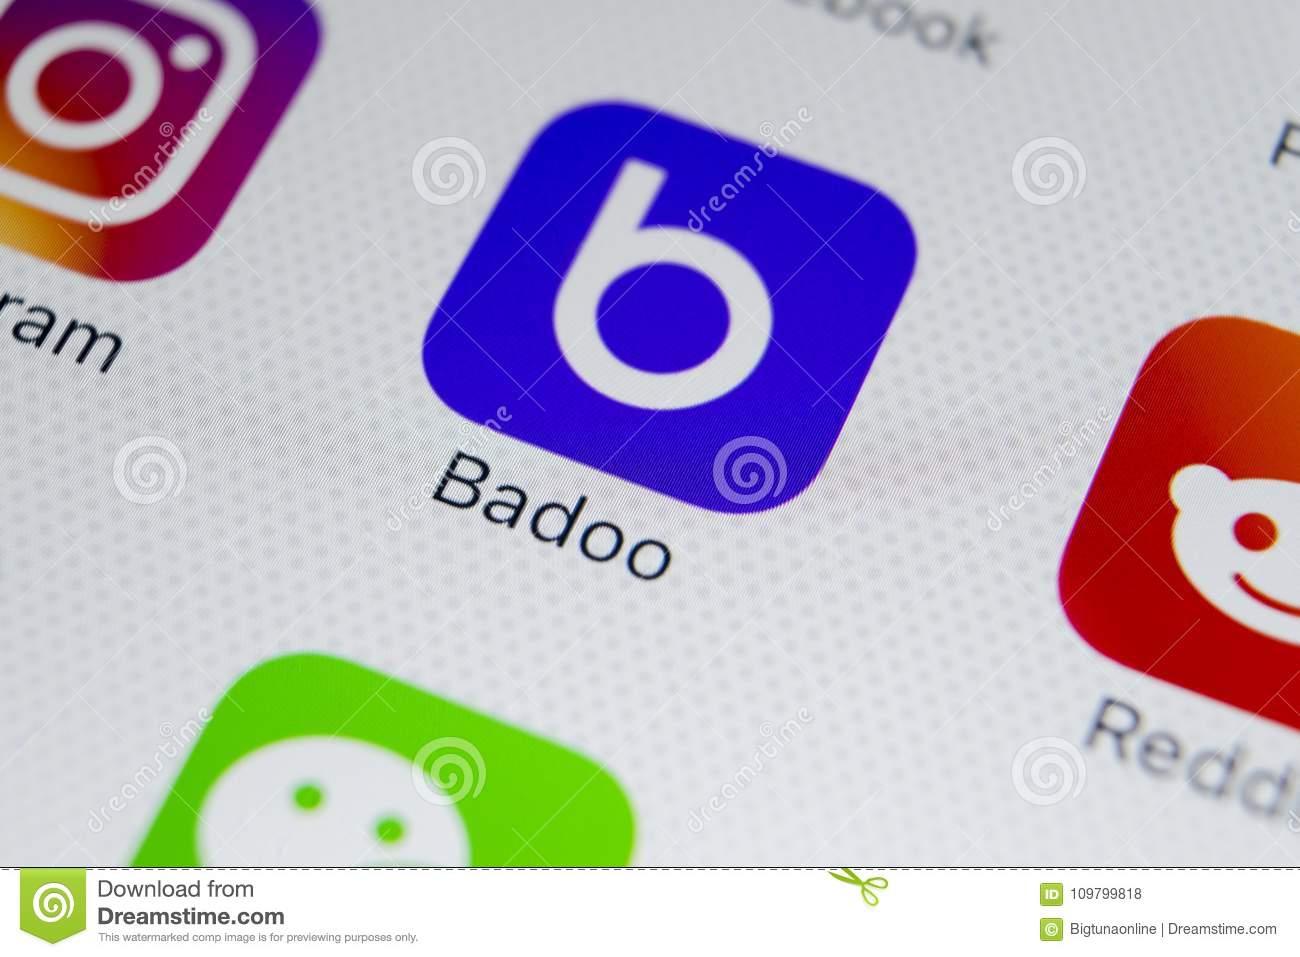 Badoo app download  🏆 Download Badoo for Amazon Kindle Fire Tablet